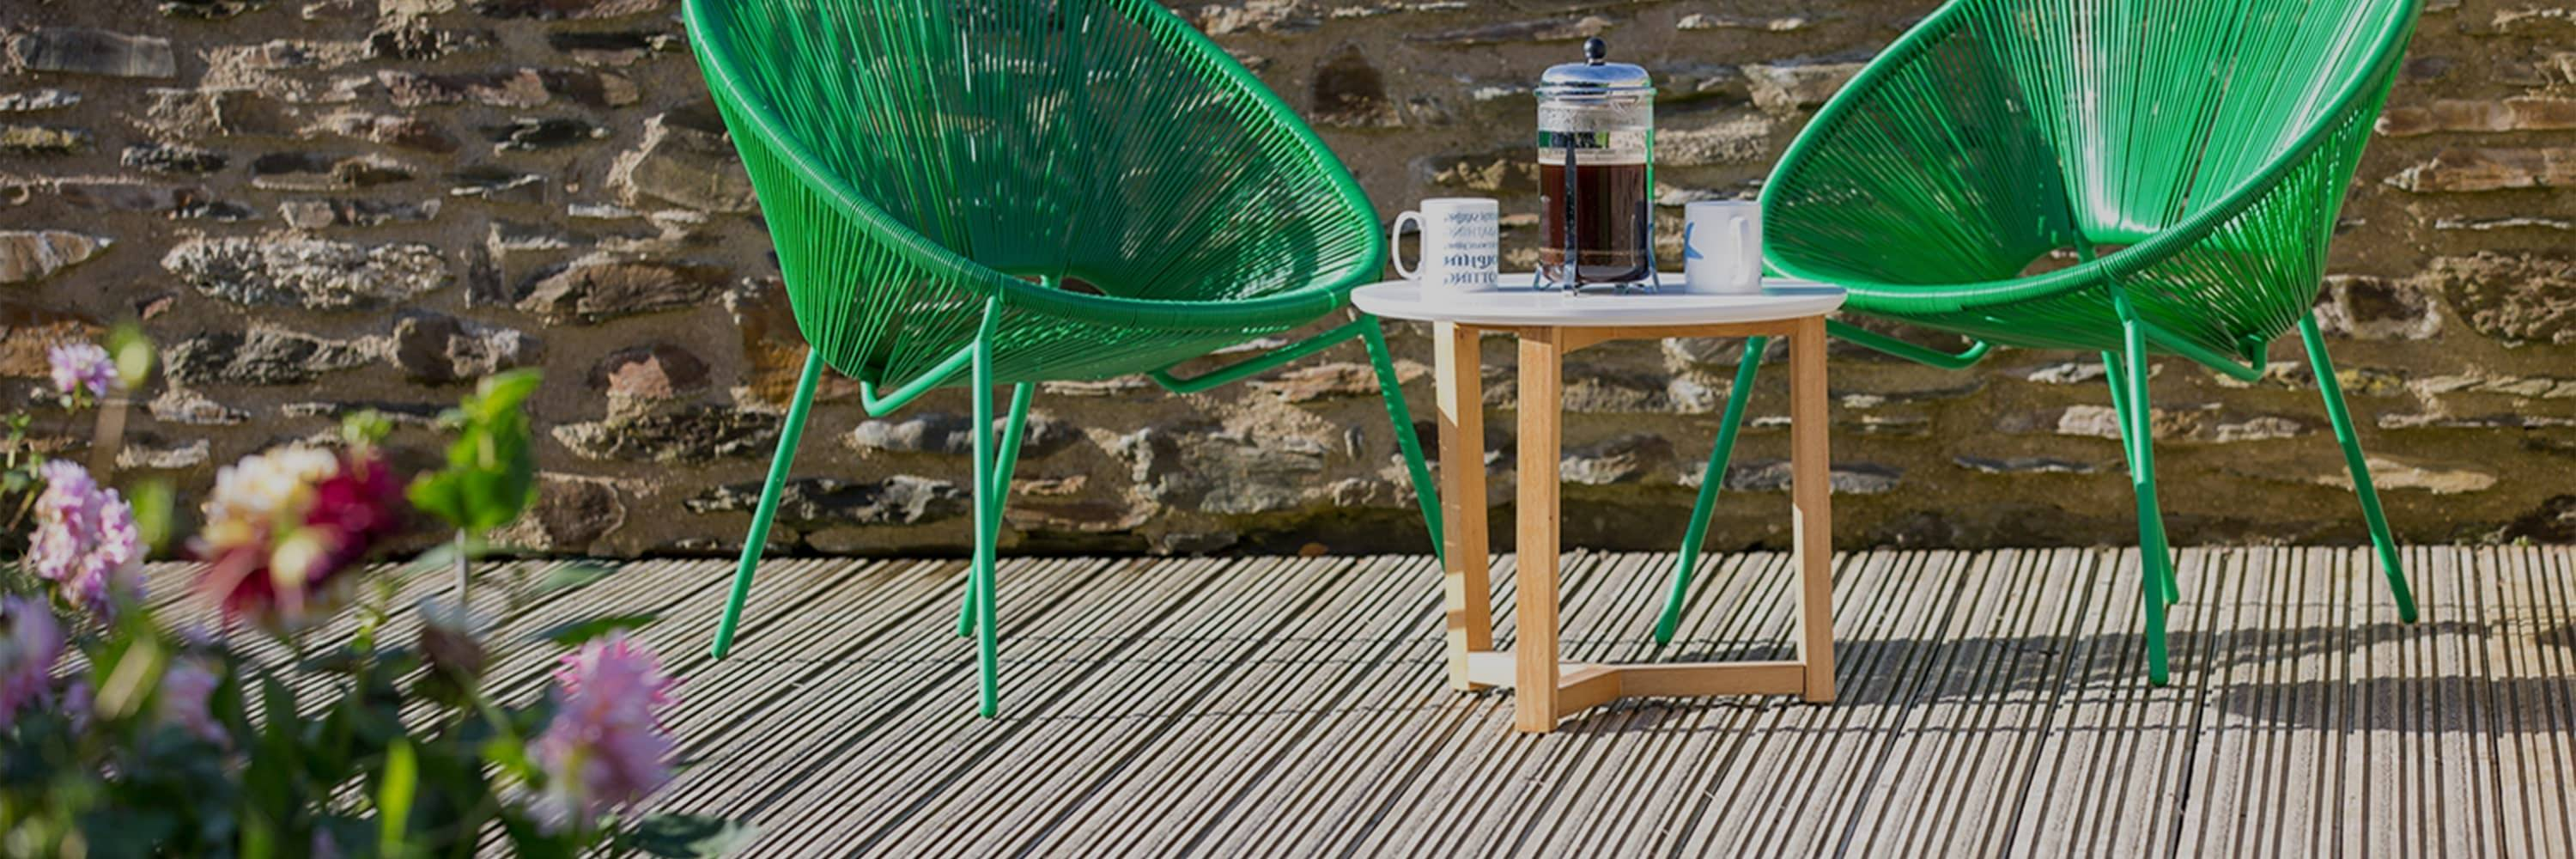 Chairs and Coffee on Decking